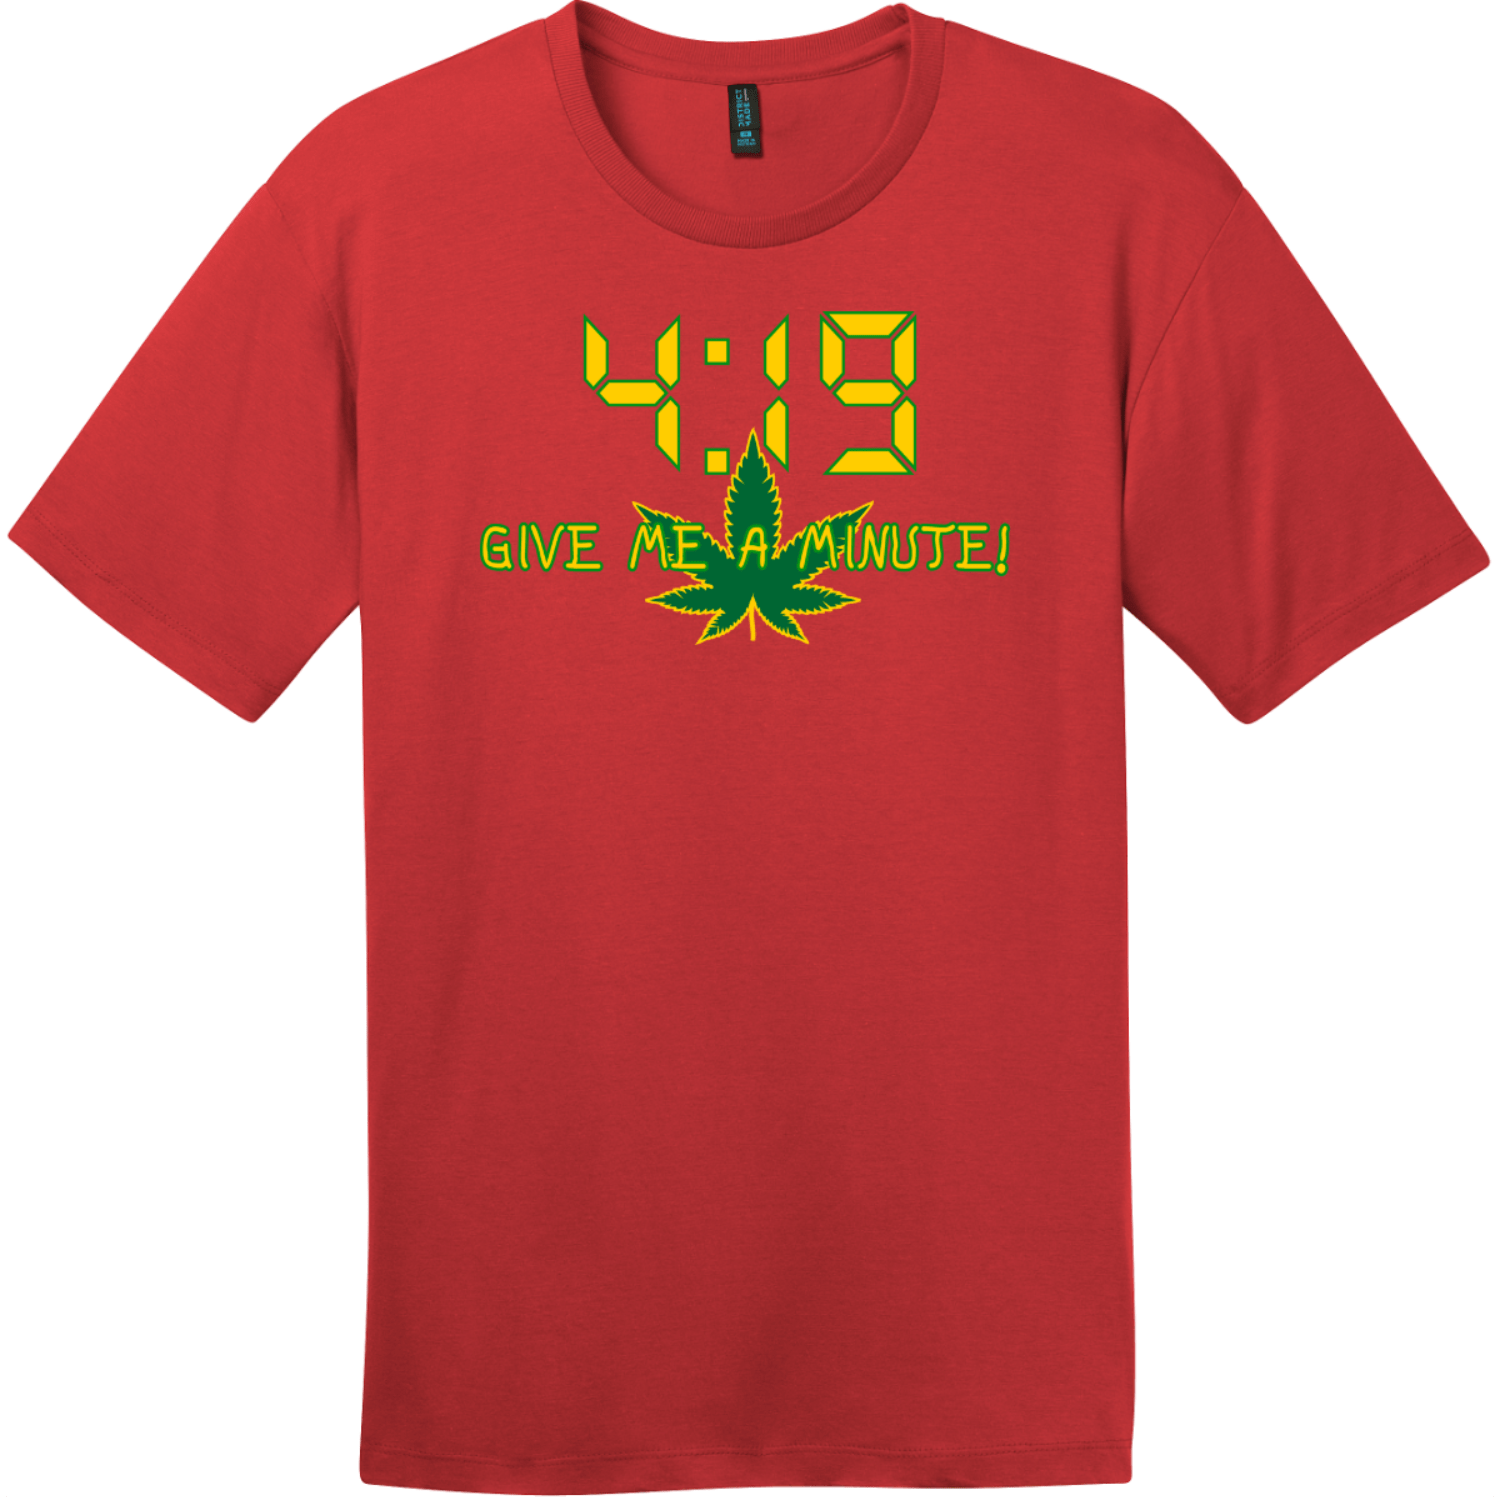 4:19 Give Me A Minute T-Shirt Classic Red District Perfect Weight Tee DT104